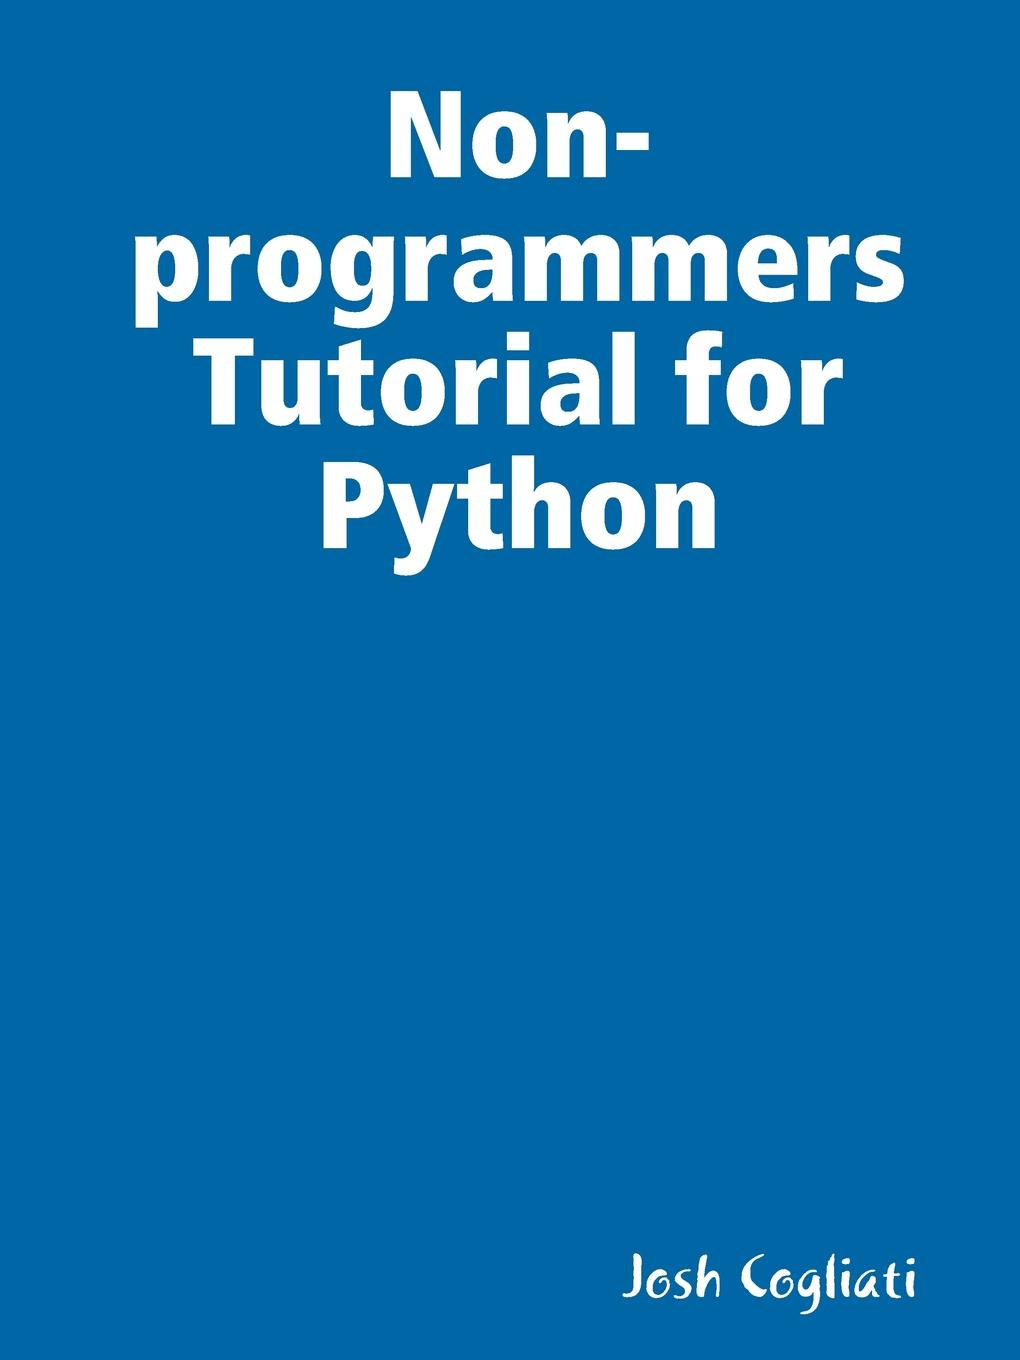 Josh Cogliati Non-programmers Tutorial for Python adam stewart python programming python programming for beginners a comprehensive guide to learnings the basics of python programming